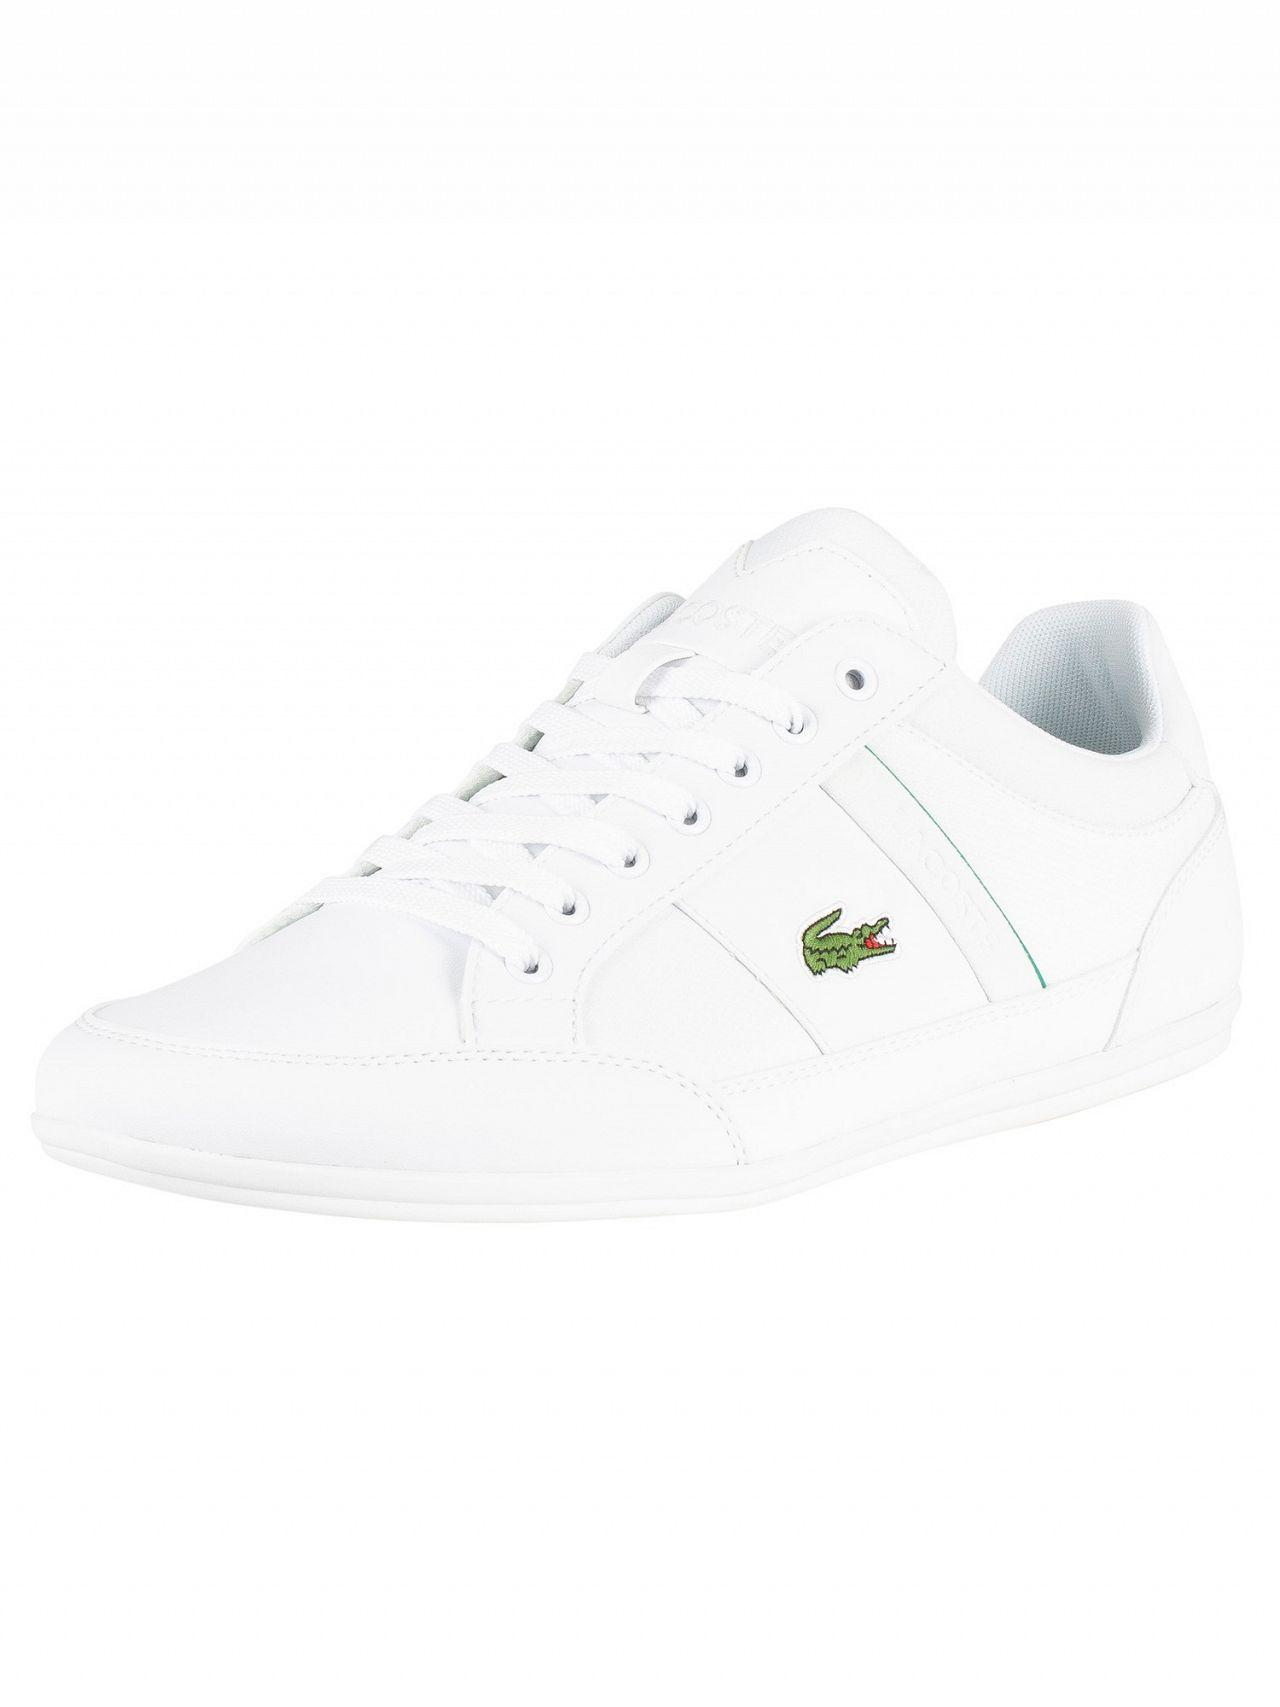 7e156b692 Lyst - Lacoste White Chaymon 219 1 Cma Leather Trainers in White for ...